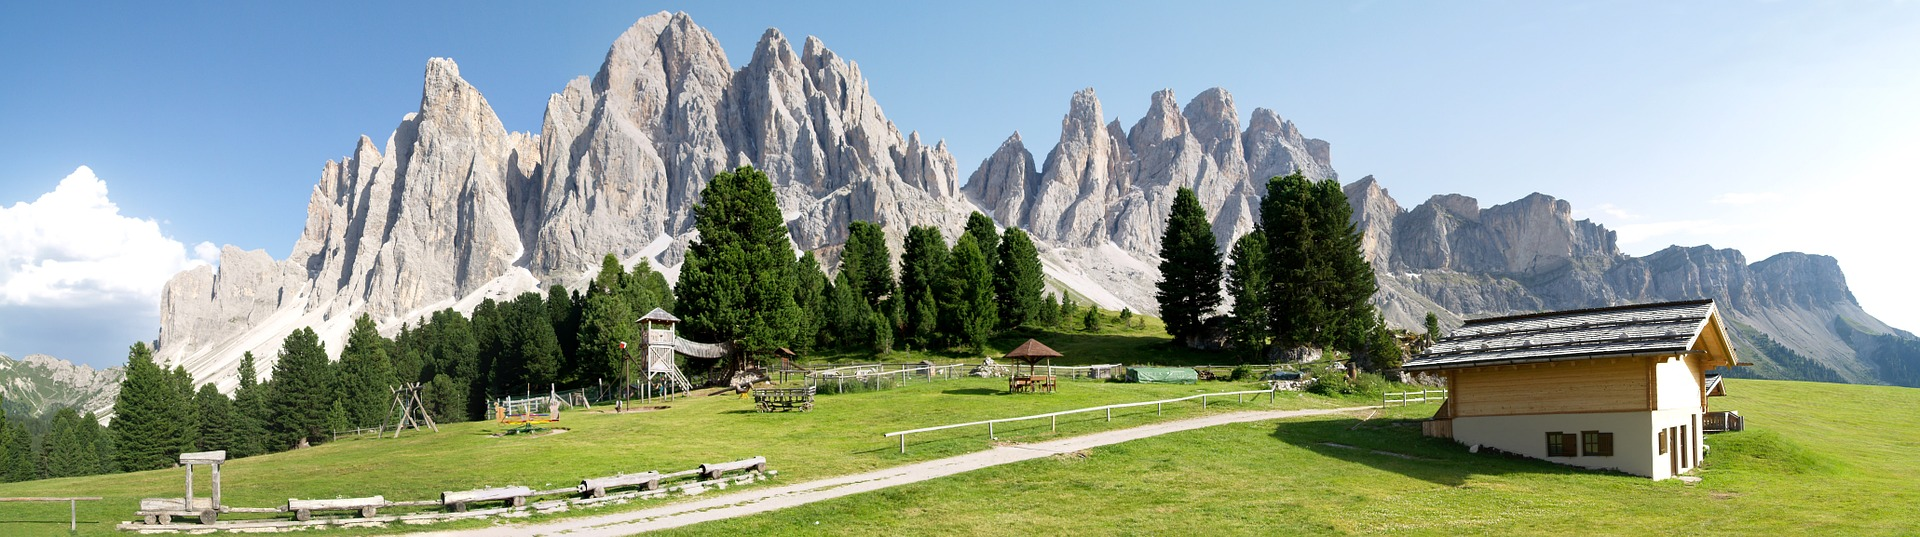 South Tyrol - Dolomiti Mountains 2